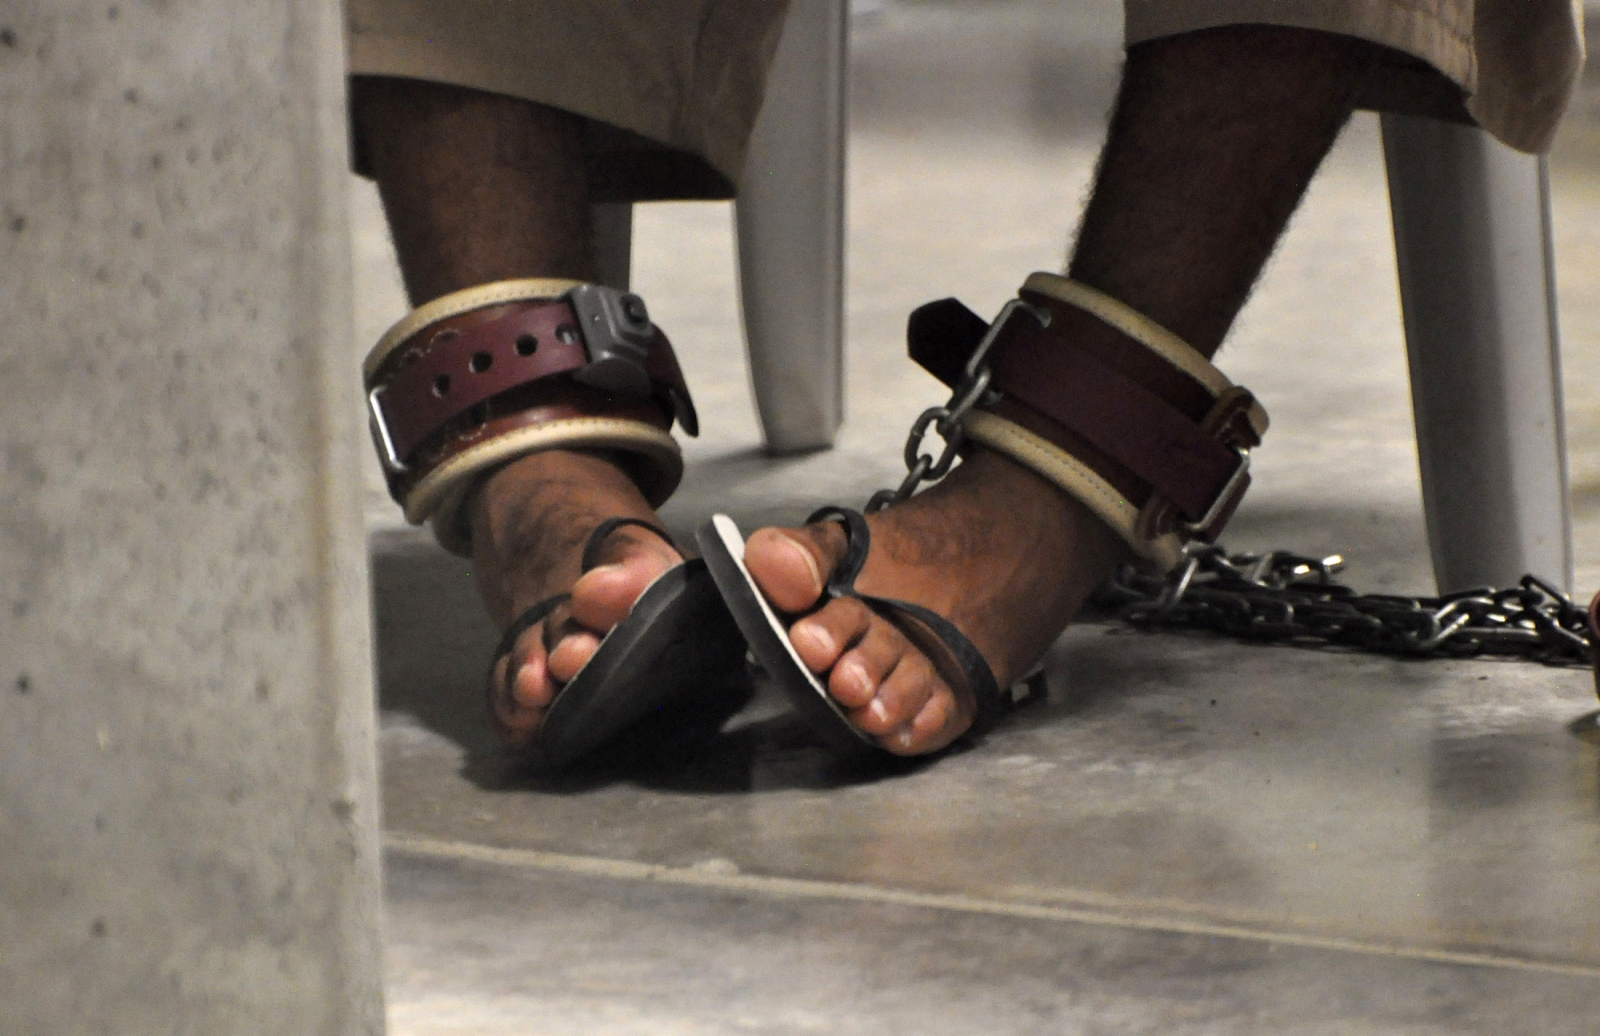 """In this photo, reviewed by a U.S. Department of Defense official, a Guantanamo detainee's feet are shackled to the floor as he attends a """"Life Skills"""" class inside the Camp 6 high-security detention facility at Guantanamo Bay U.S. Naval Base"""